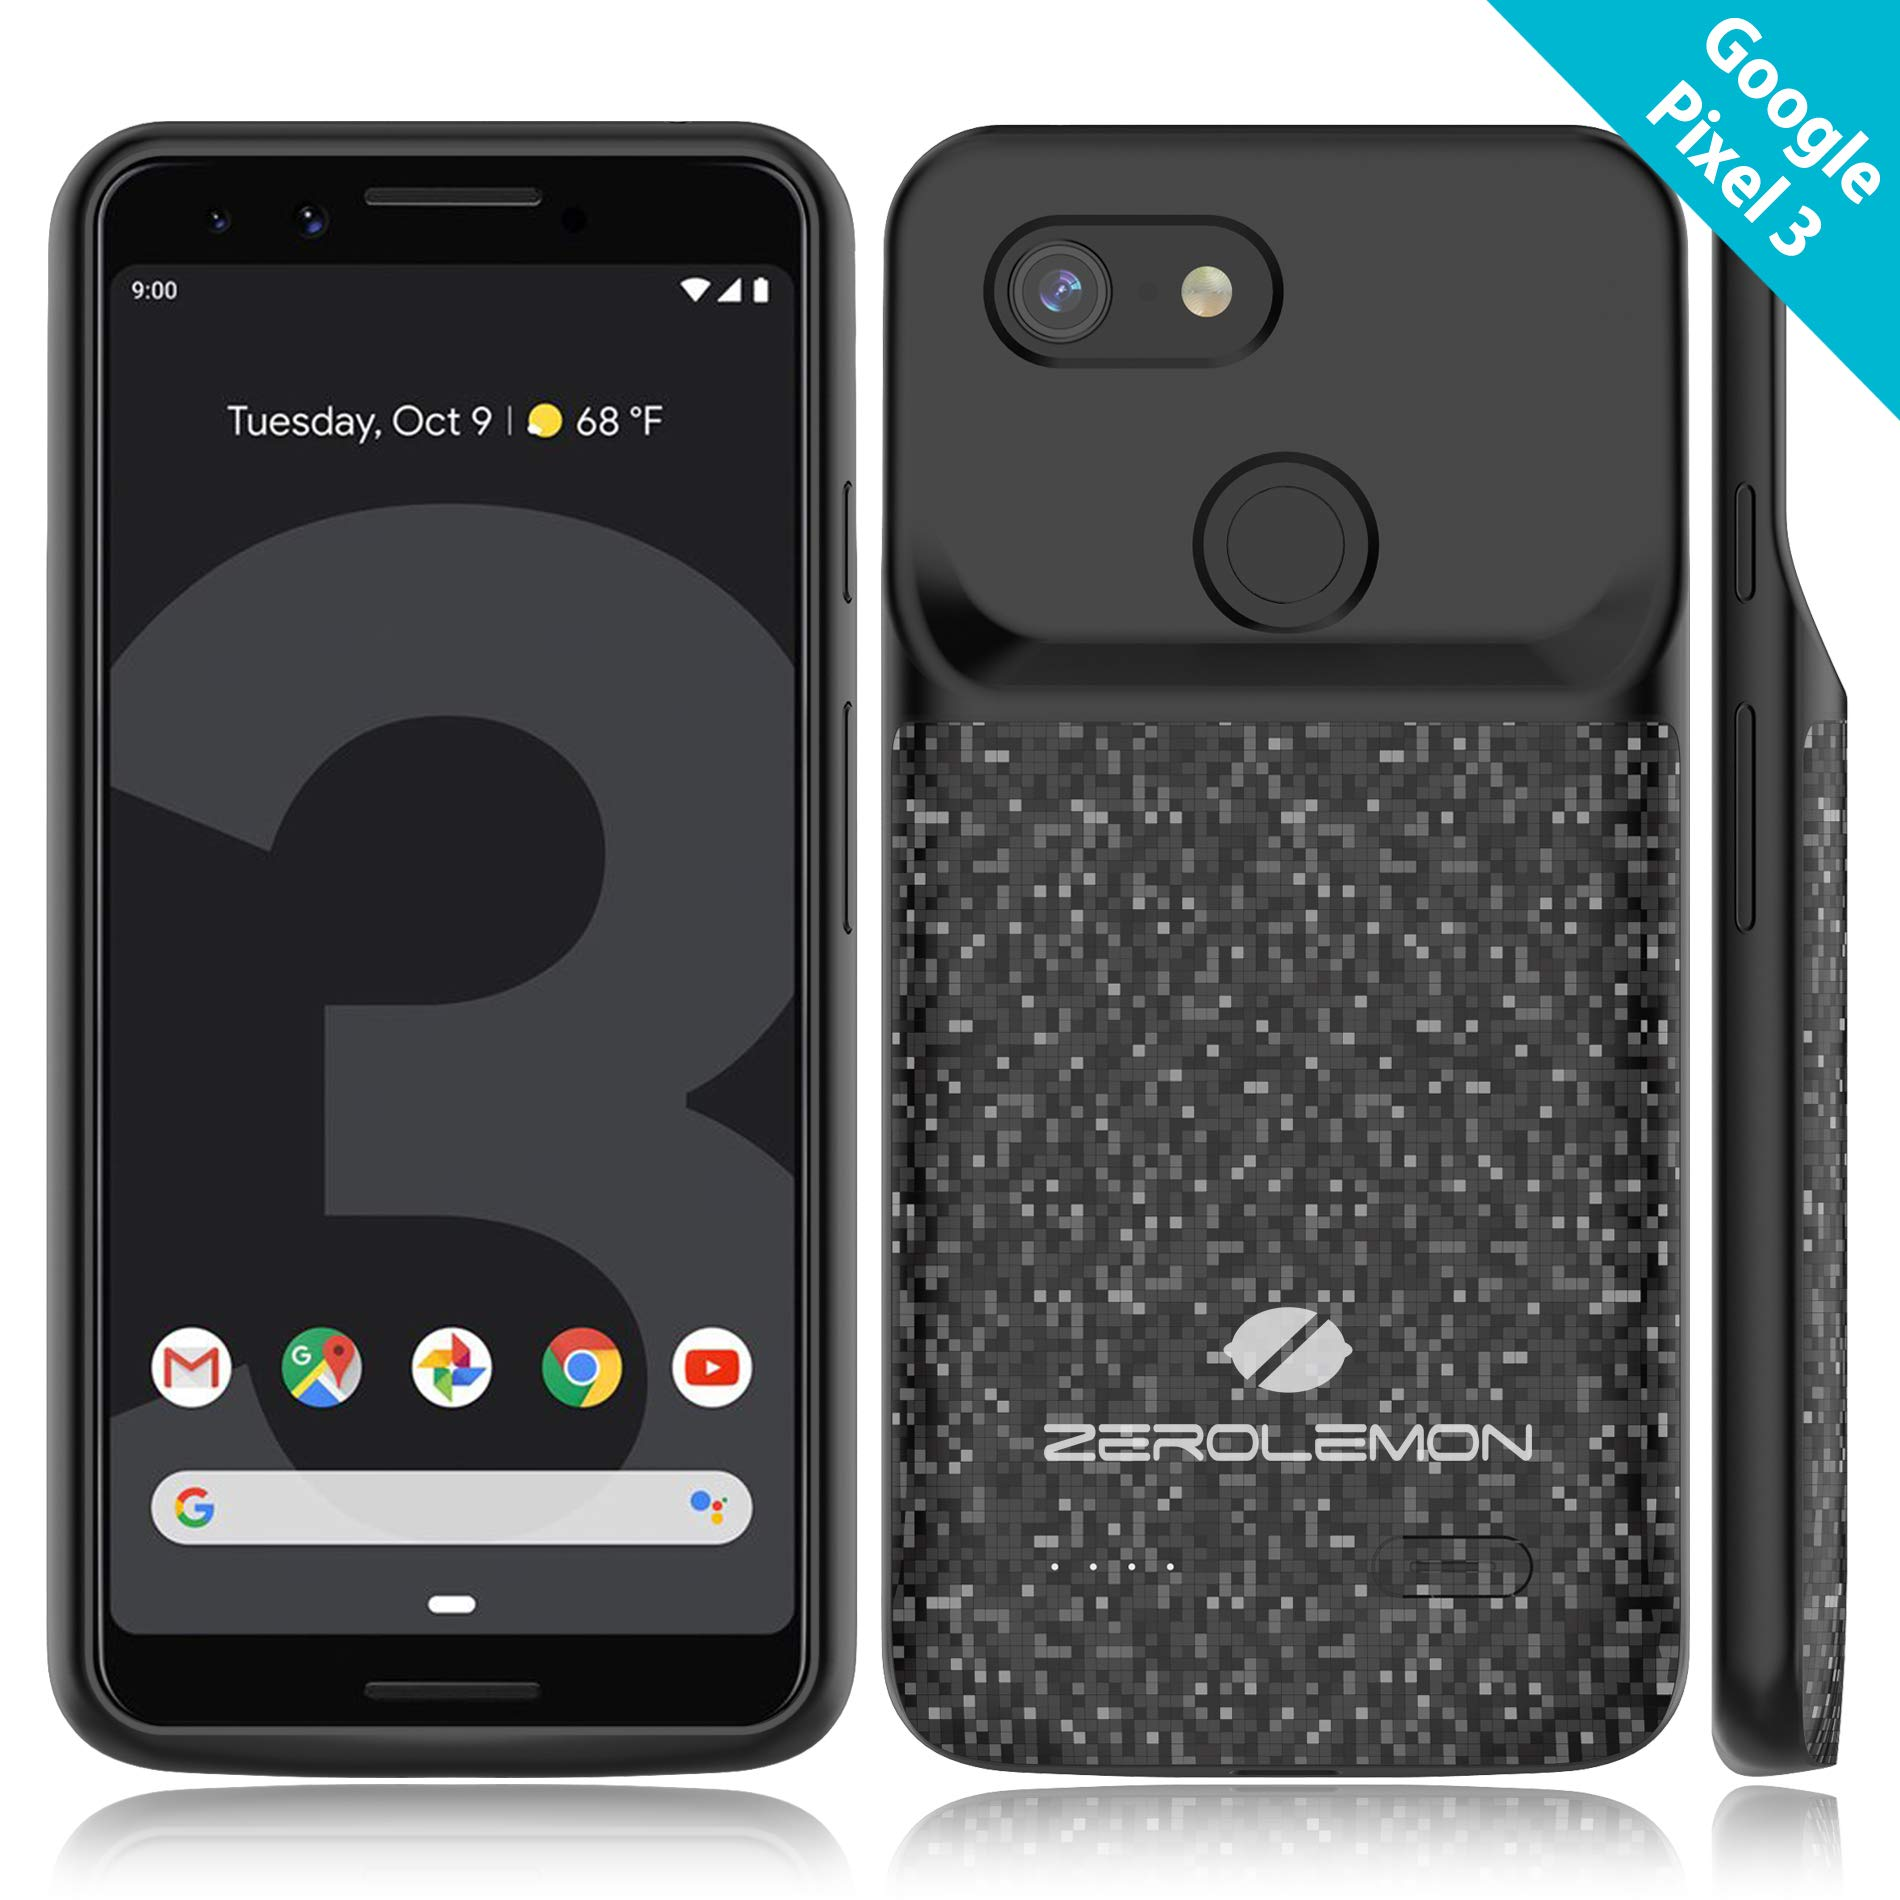 Google Pixel 3 Battery Charging Case, ZeroLemon Slim Power 4700mAh Extended Battery with Soft TPU Full Edge Protection Case for Google Pixel 3 - Black